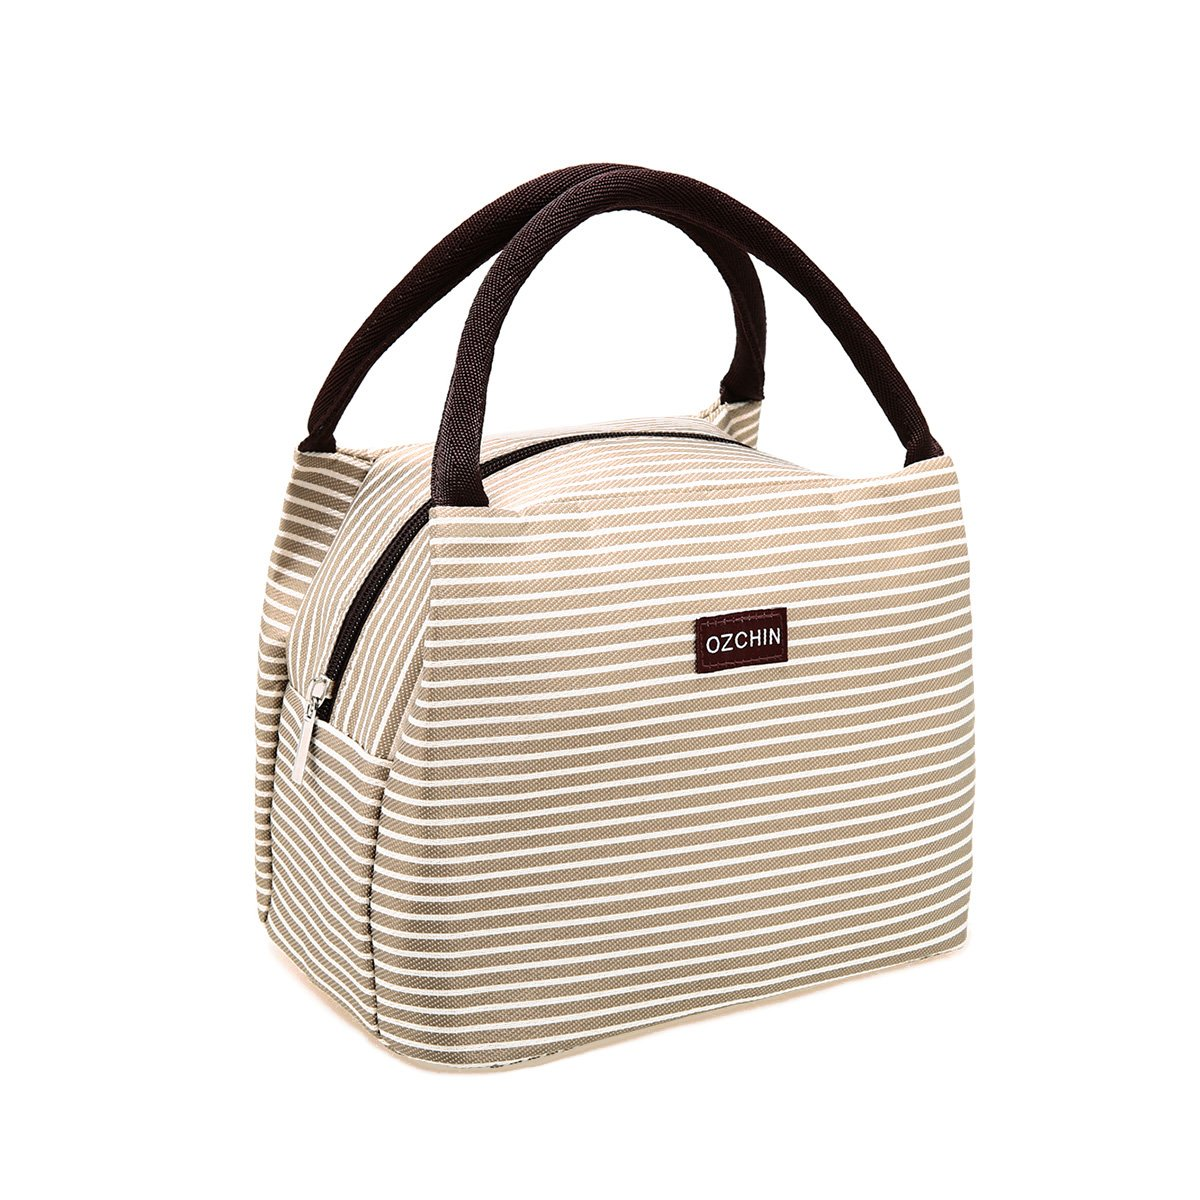 OZCHIN Insulated Lunch Bag for Women Compact Reusable Lunch Tote Cooler Bag Handbag for Adults Kids Students (Creamy Beige)